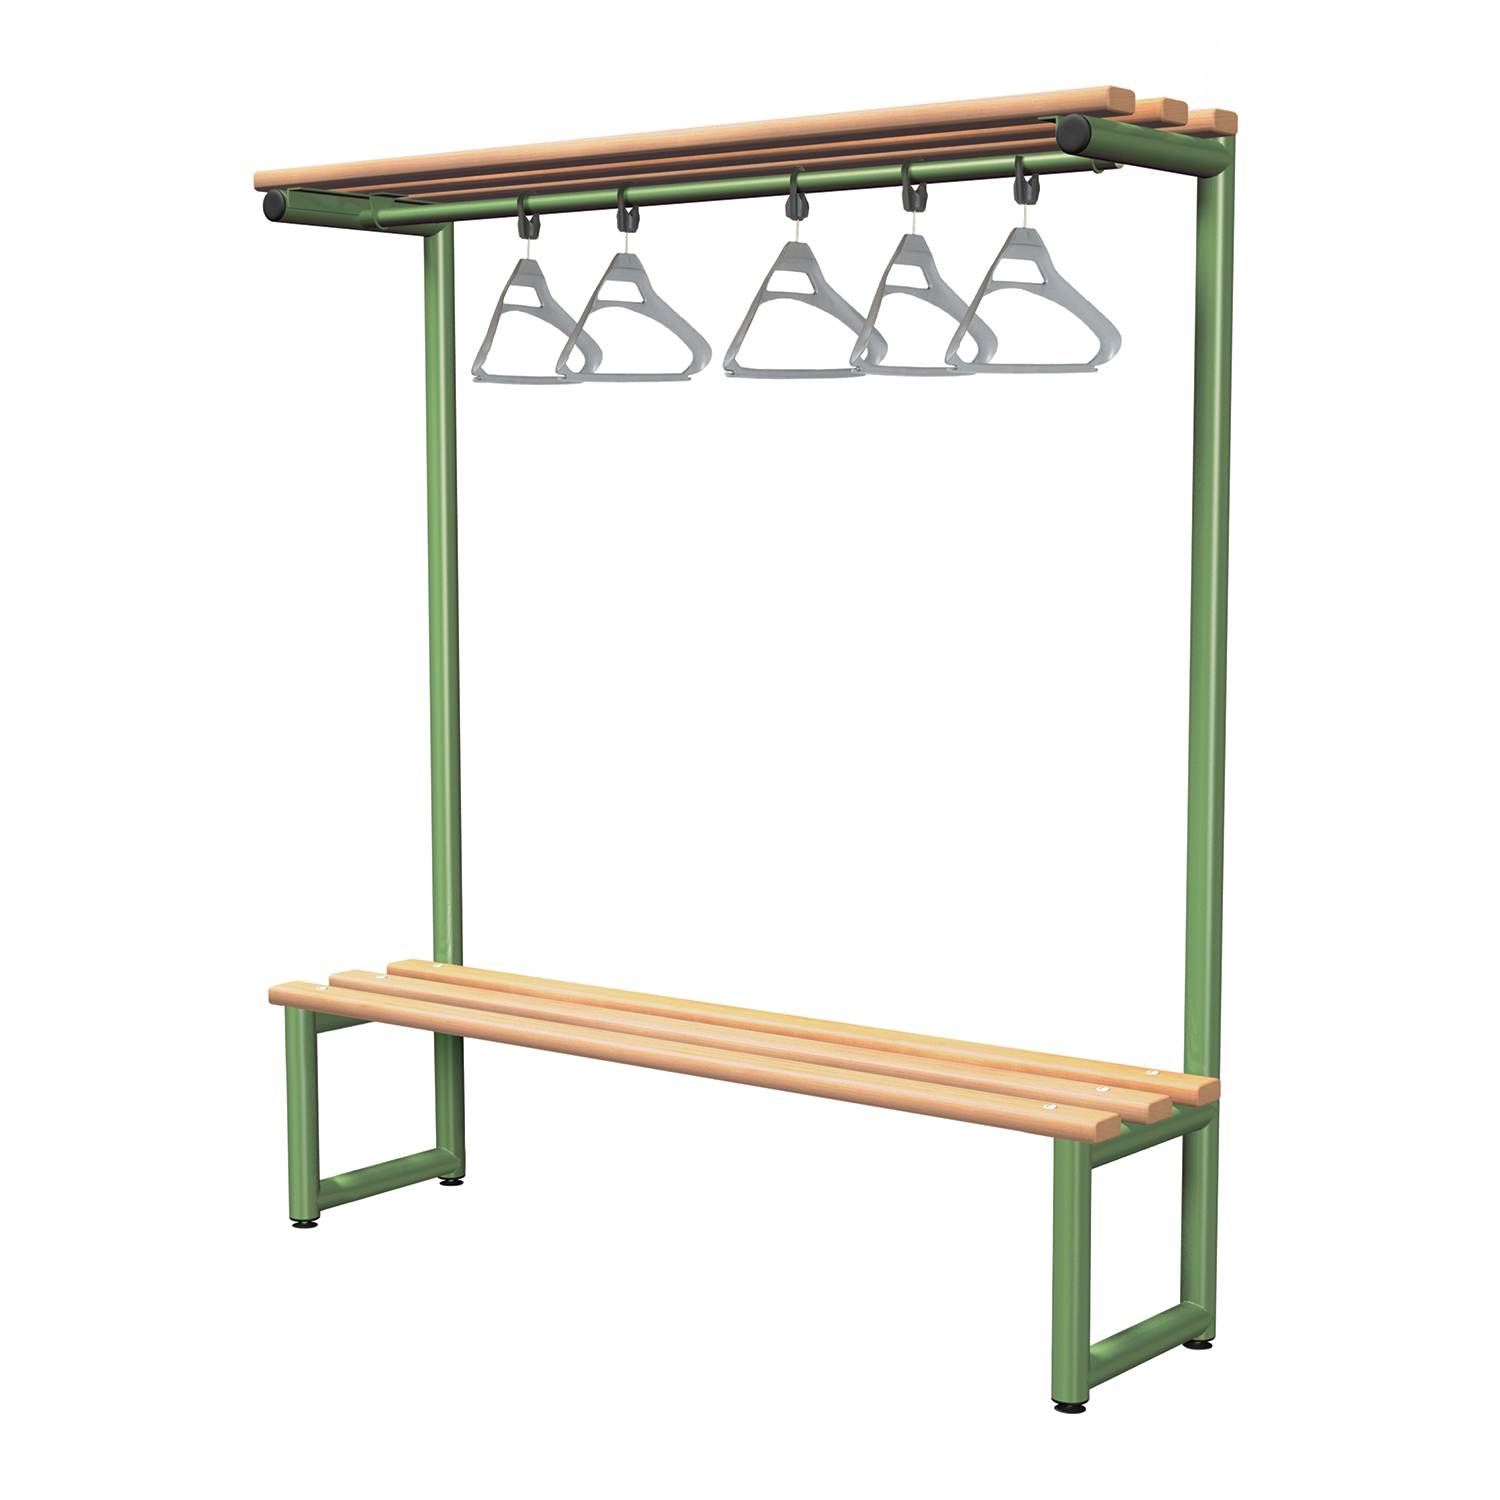 Probe cloakroom overhead hanging bench